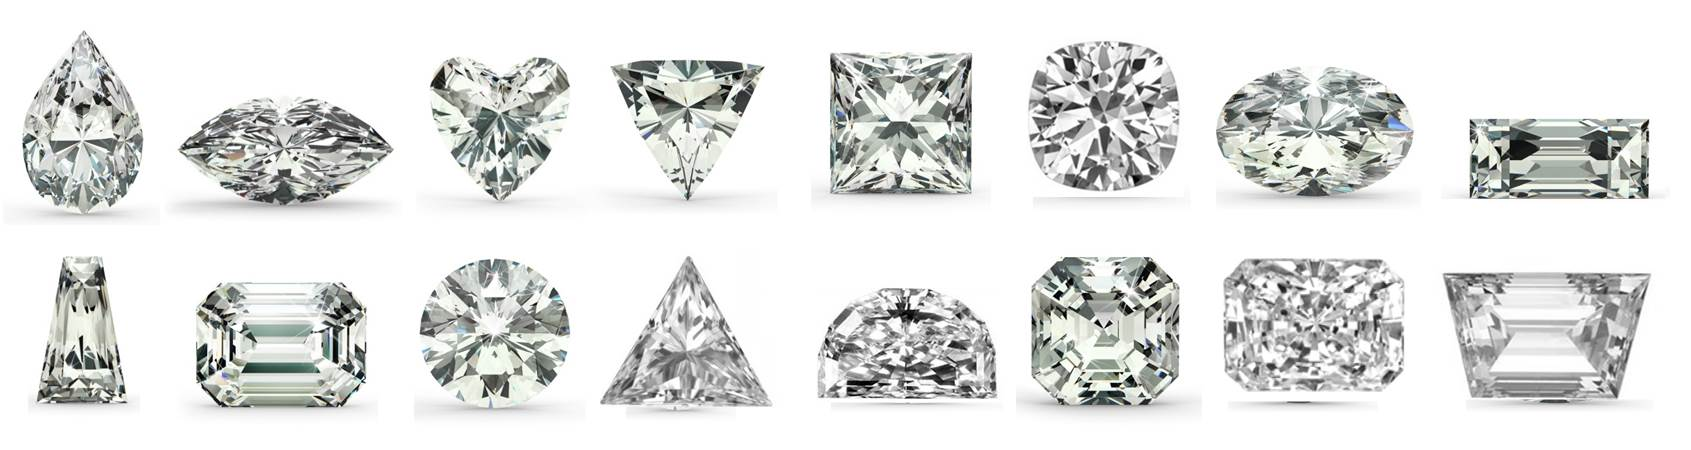 16 cubic zirconia stone shapes